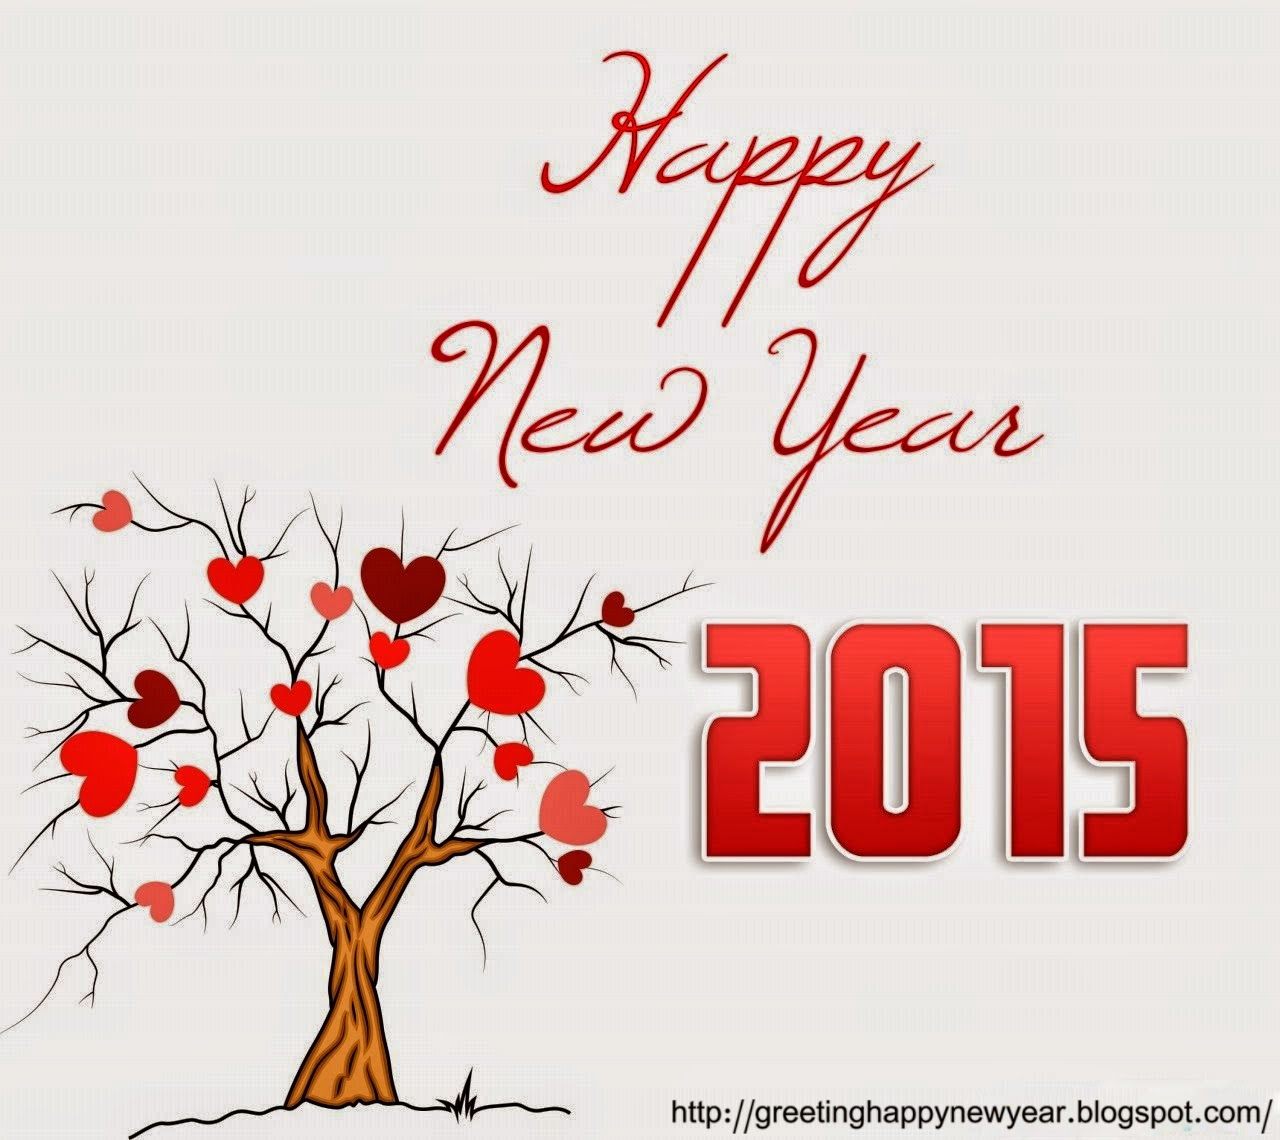 Greeting Happy New Year 2015 Images